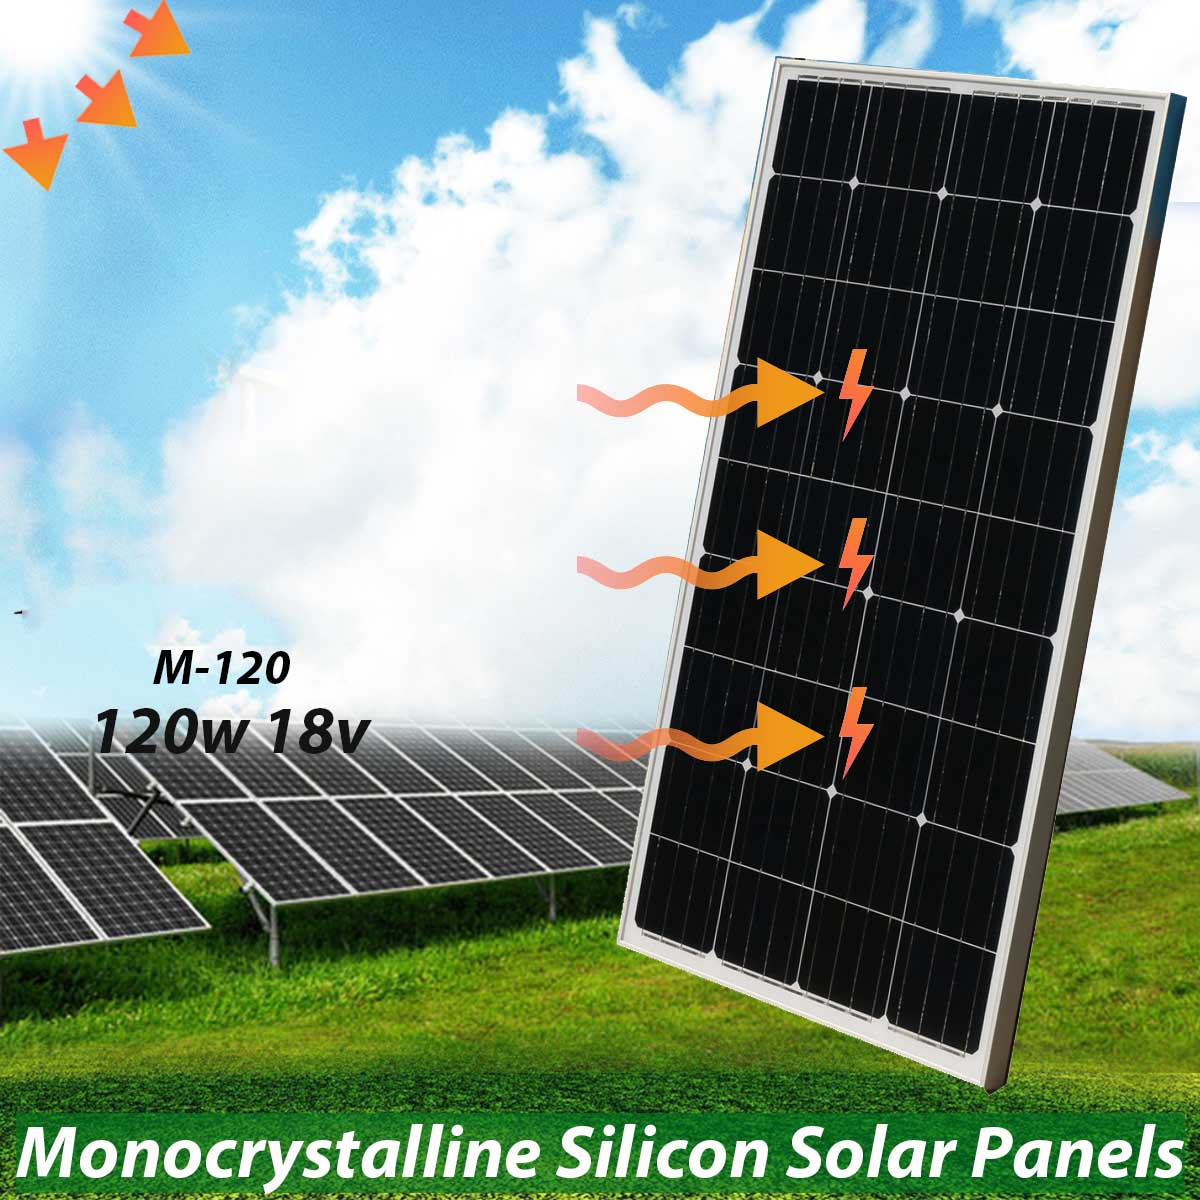 KINCO 120w 18v Monocrystalline Silicon Solar Panel With Glass Bearing Plate High Conversion Rate For Solar System Supply набор bosch ножовка gsa 18v 32 0 601 6a8 102 адаптер gaa 18v 24